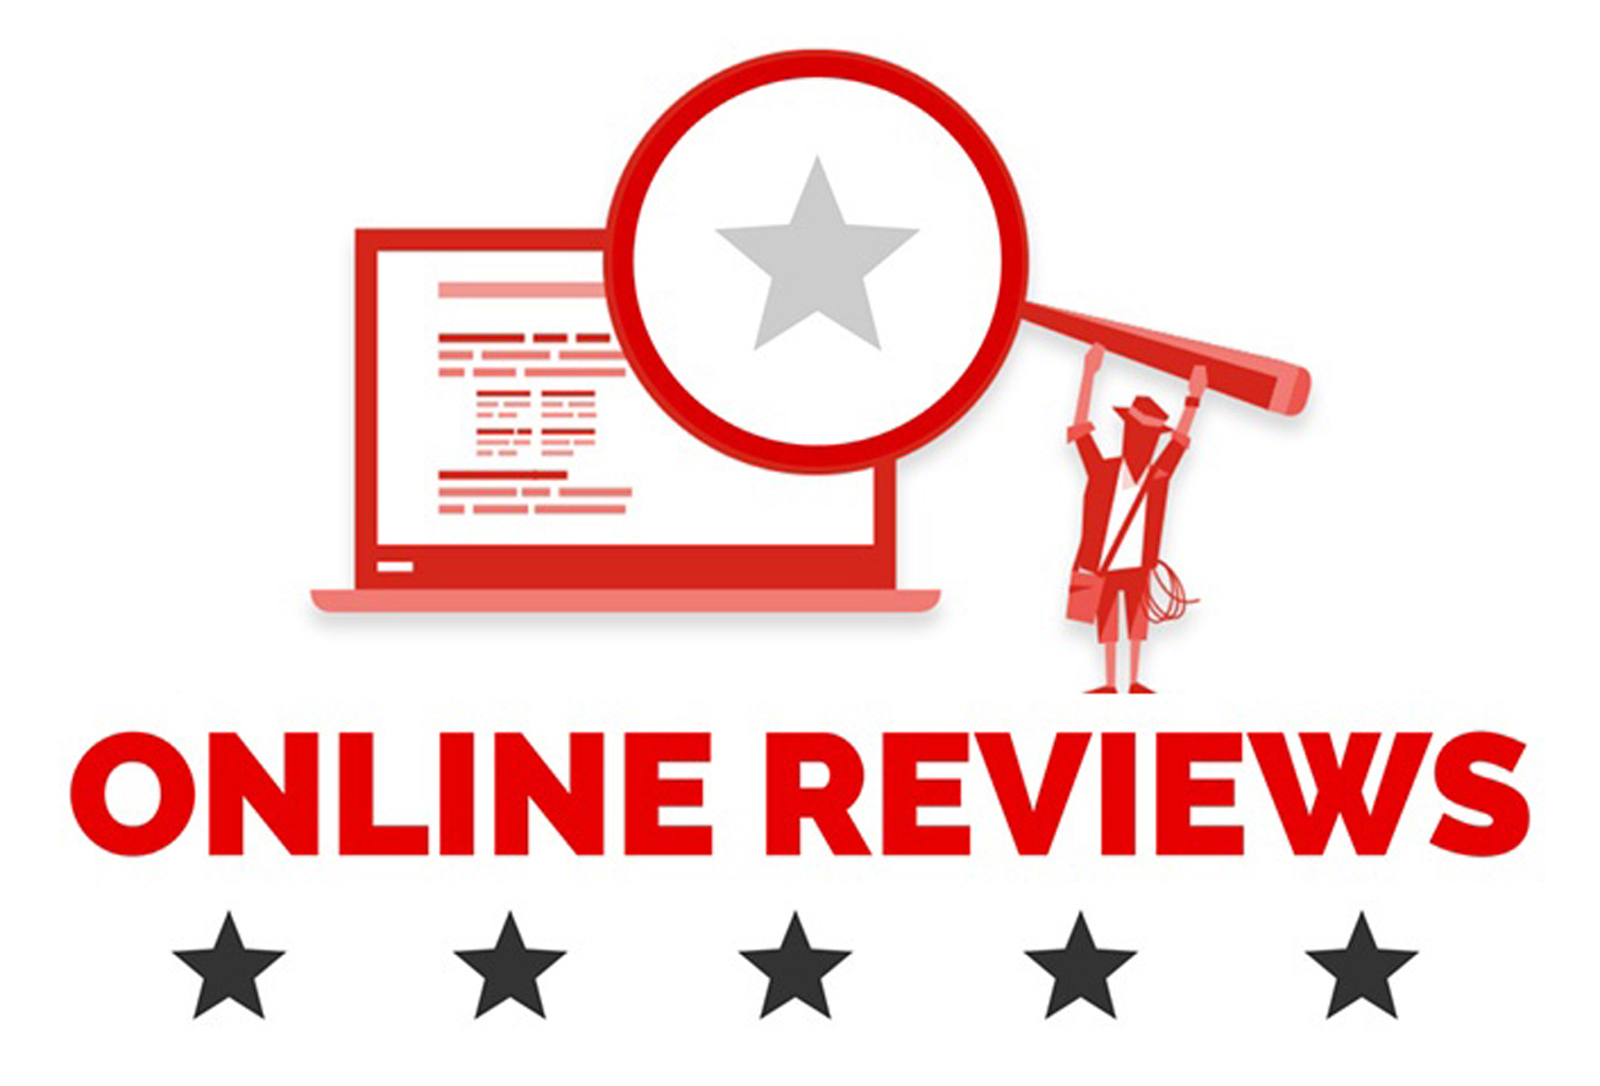 Top 3 SEO Benefits of Online Reviews 1